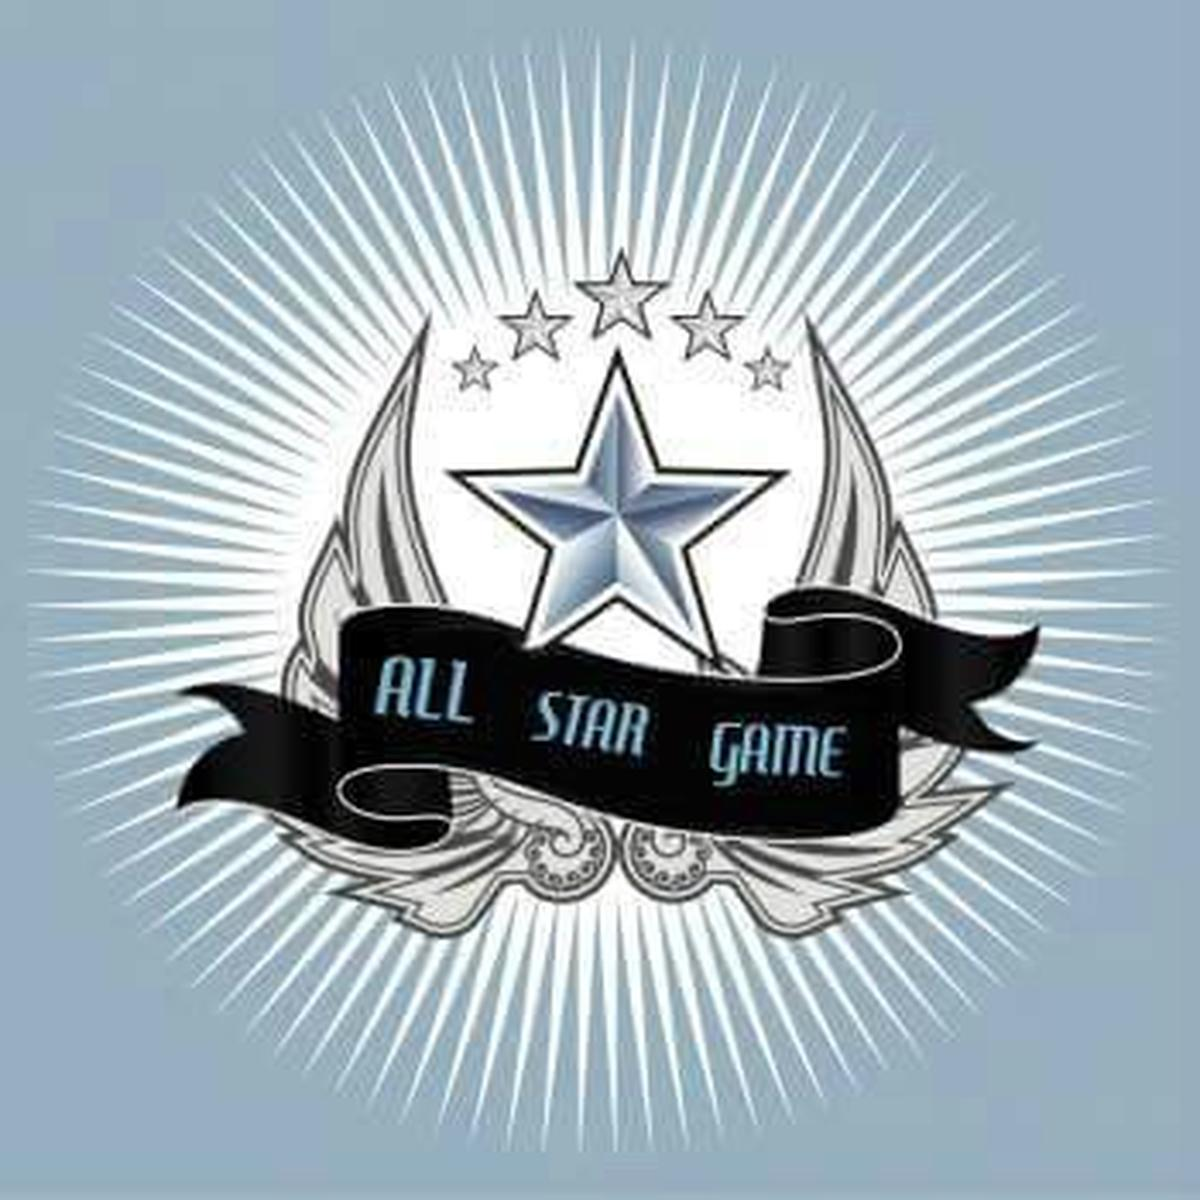 ALL STAR GAMME F